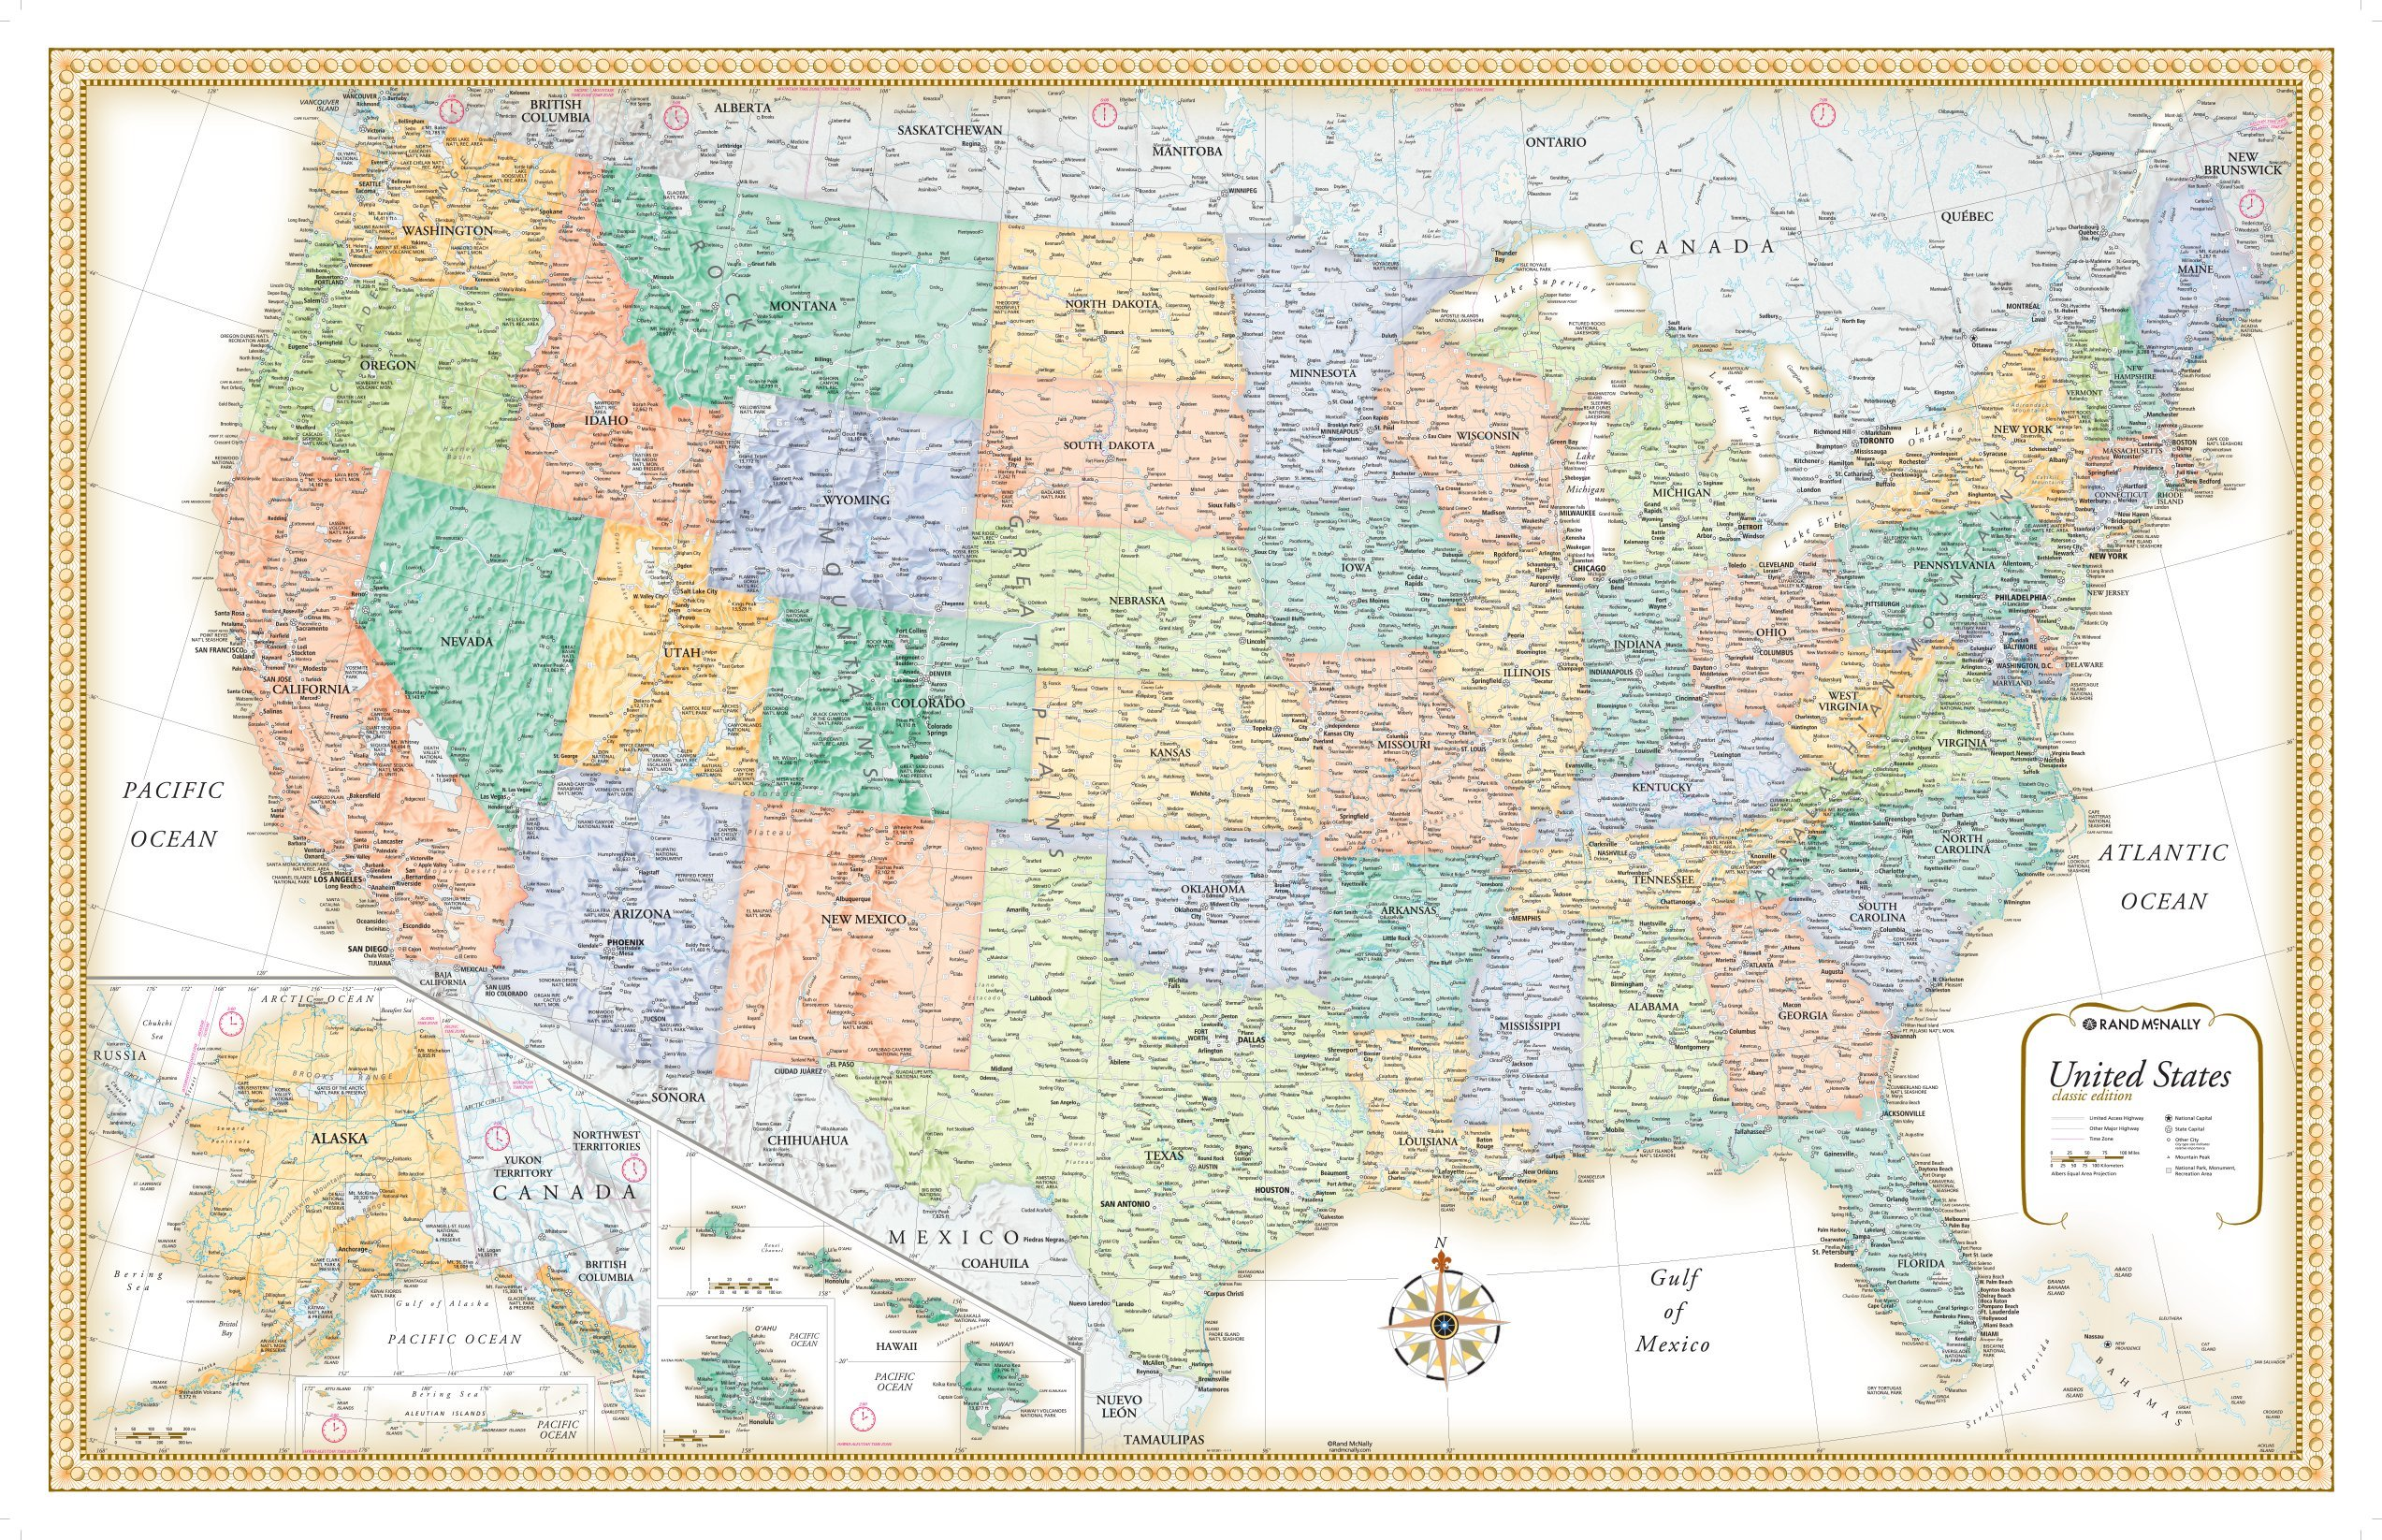 RMC Clic United States USA and World Wall Map Set Maps Of The United States on map of virginia, map of south carolina, map of the great lakes, map of washington, map of us, map of china, map of the east coast, map of czech republic, map of the mason dixon line, map of the states and capitals, map of canada, map of germany, map of the caribbean, map of south america, map of ohio, map of the continents, map of new york, map of the oceans, map of the world, map of the earth, map of north carolina, map of the us states, map of europe, map of africa, map of america, map of usa, map of the country, map of bermuda, map of the northeast, map of guam, map of california, map of mexico, map of the philippines, map of georgia, map of florida, map of texas, map of italy, map of the bahamas,